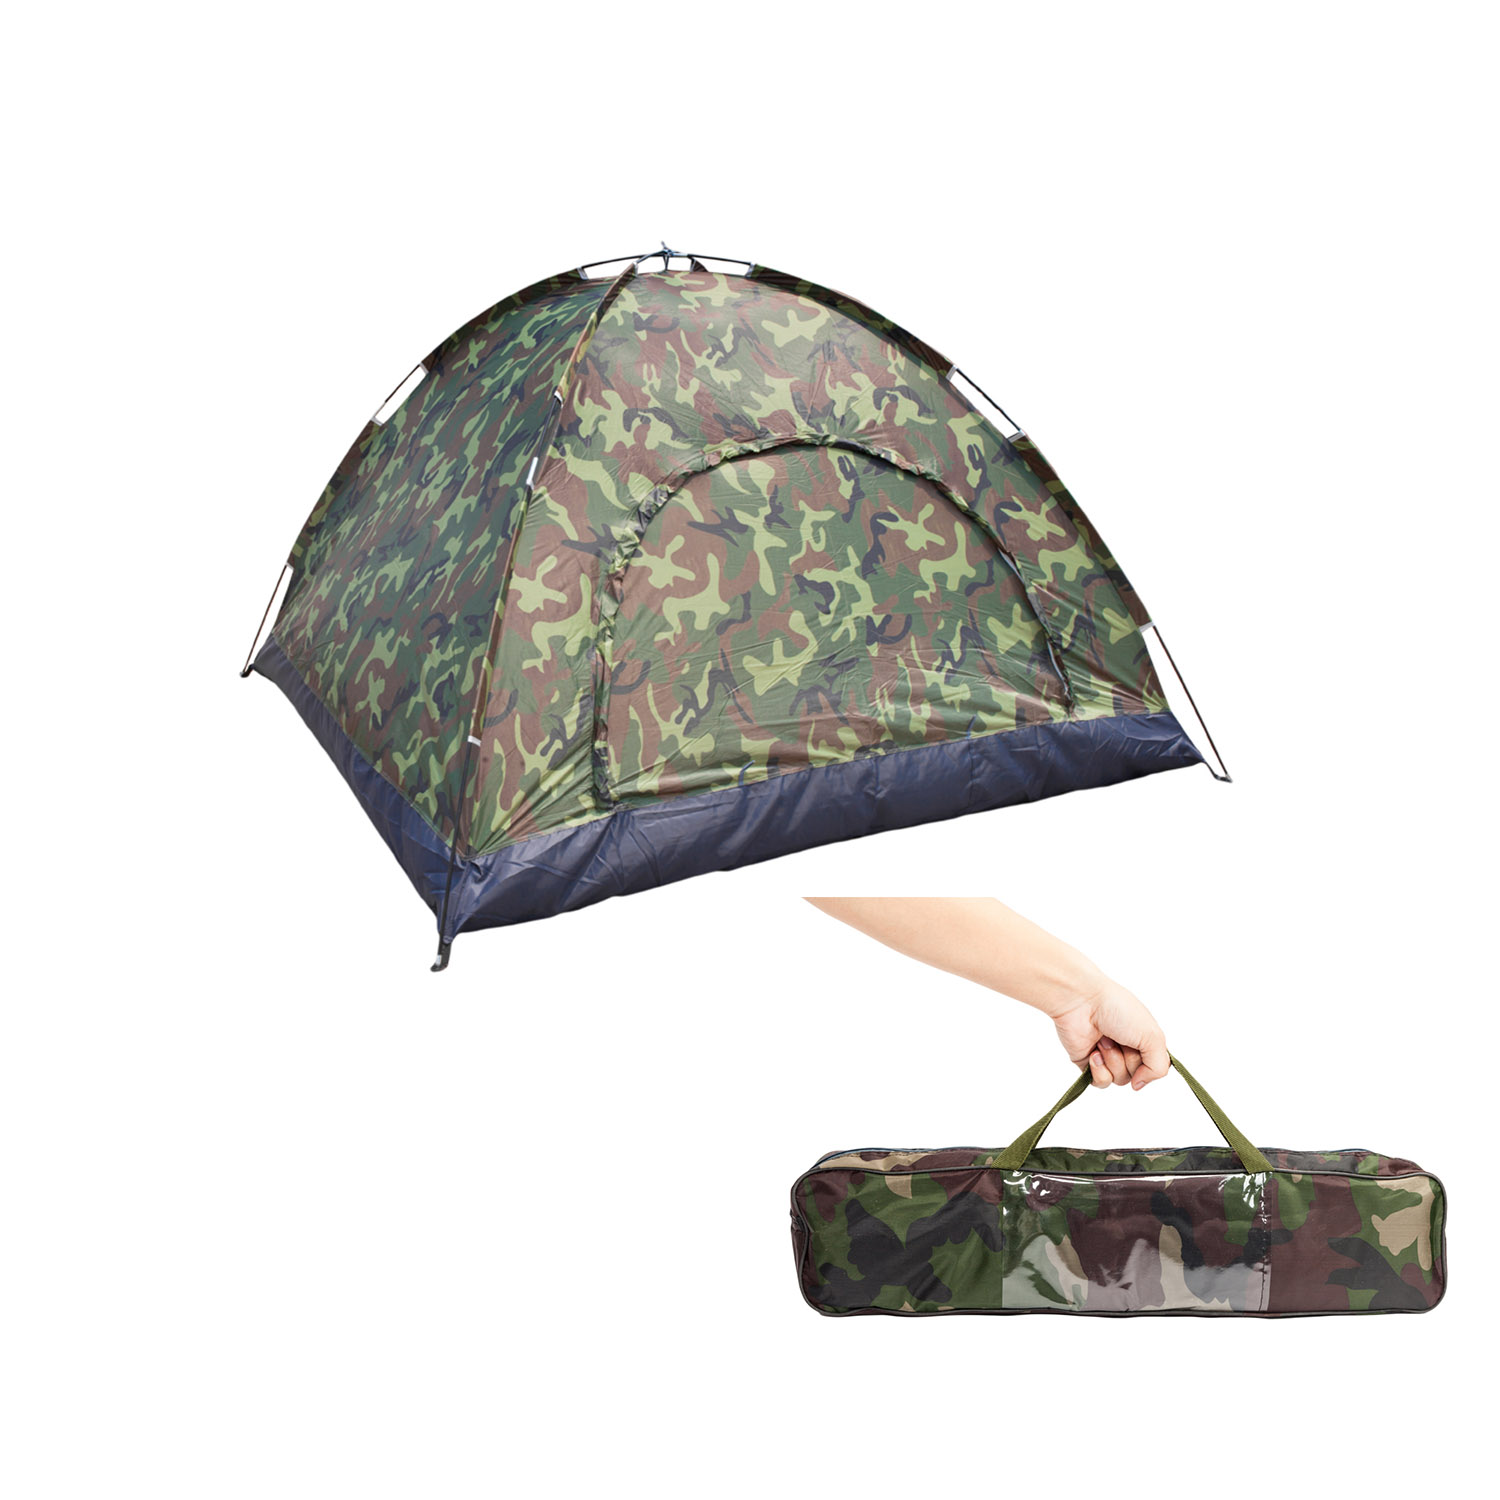 Ktaxon Family Instant Automatic Pop Up Camping Hiking 3-4 Person Tent Camo Outdoor